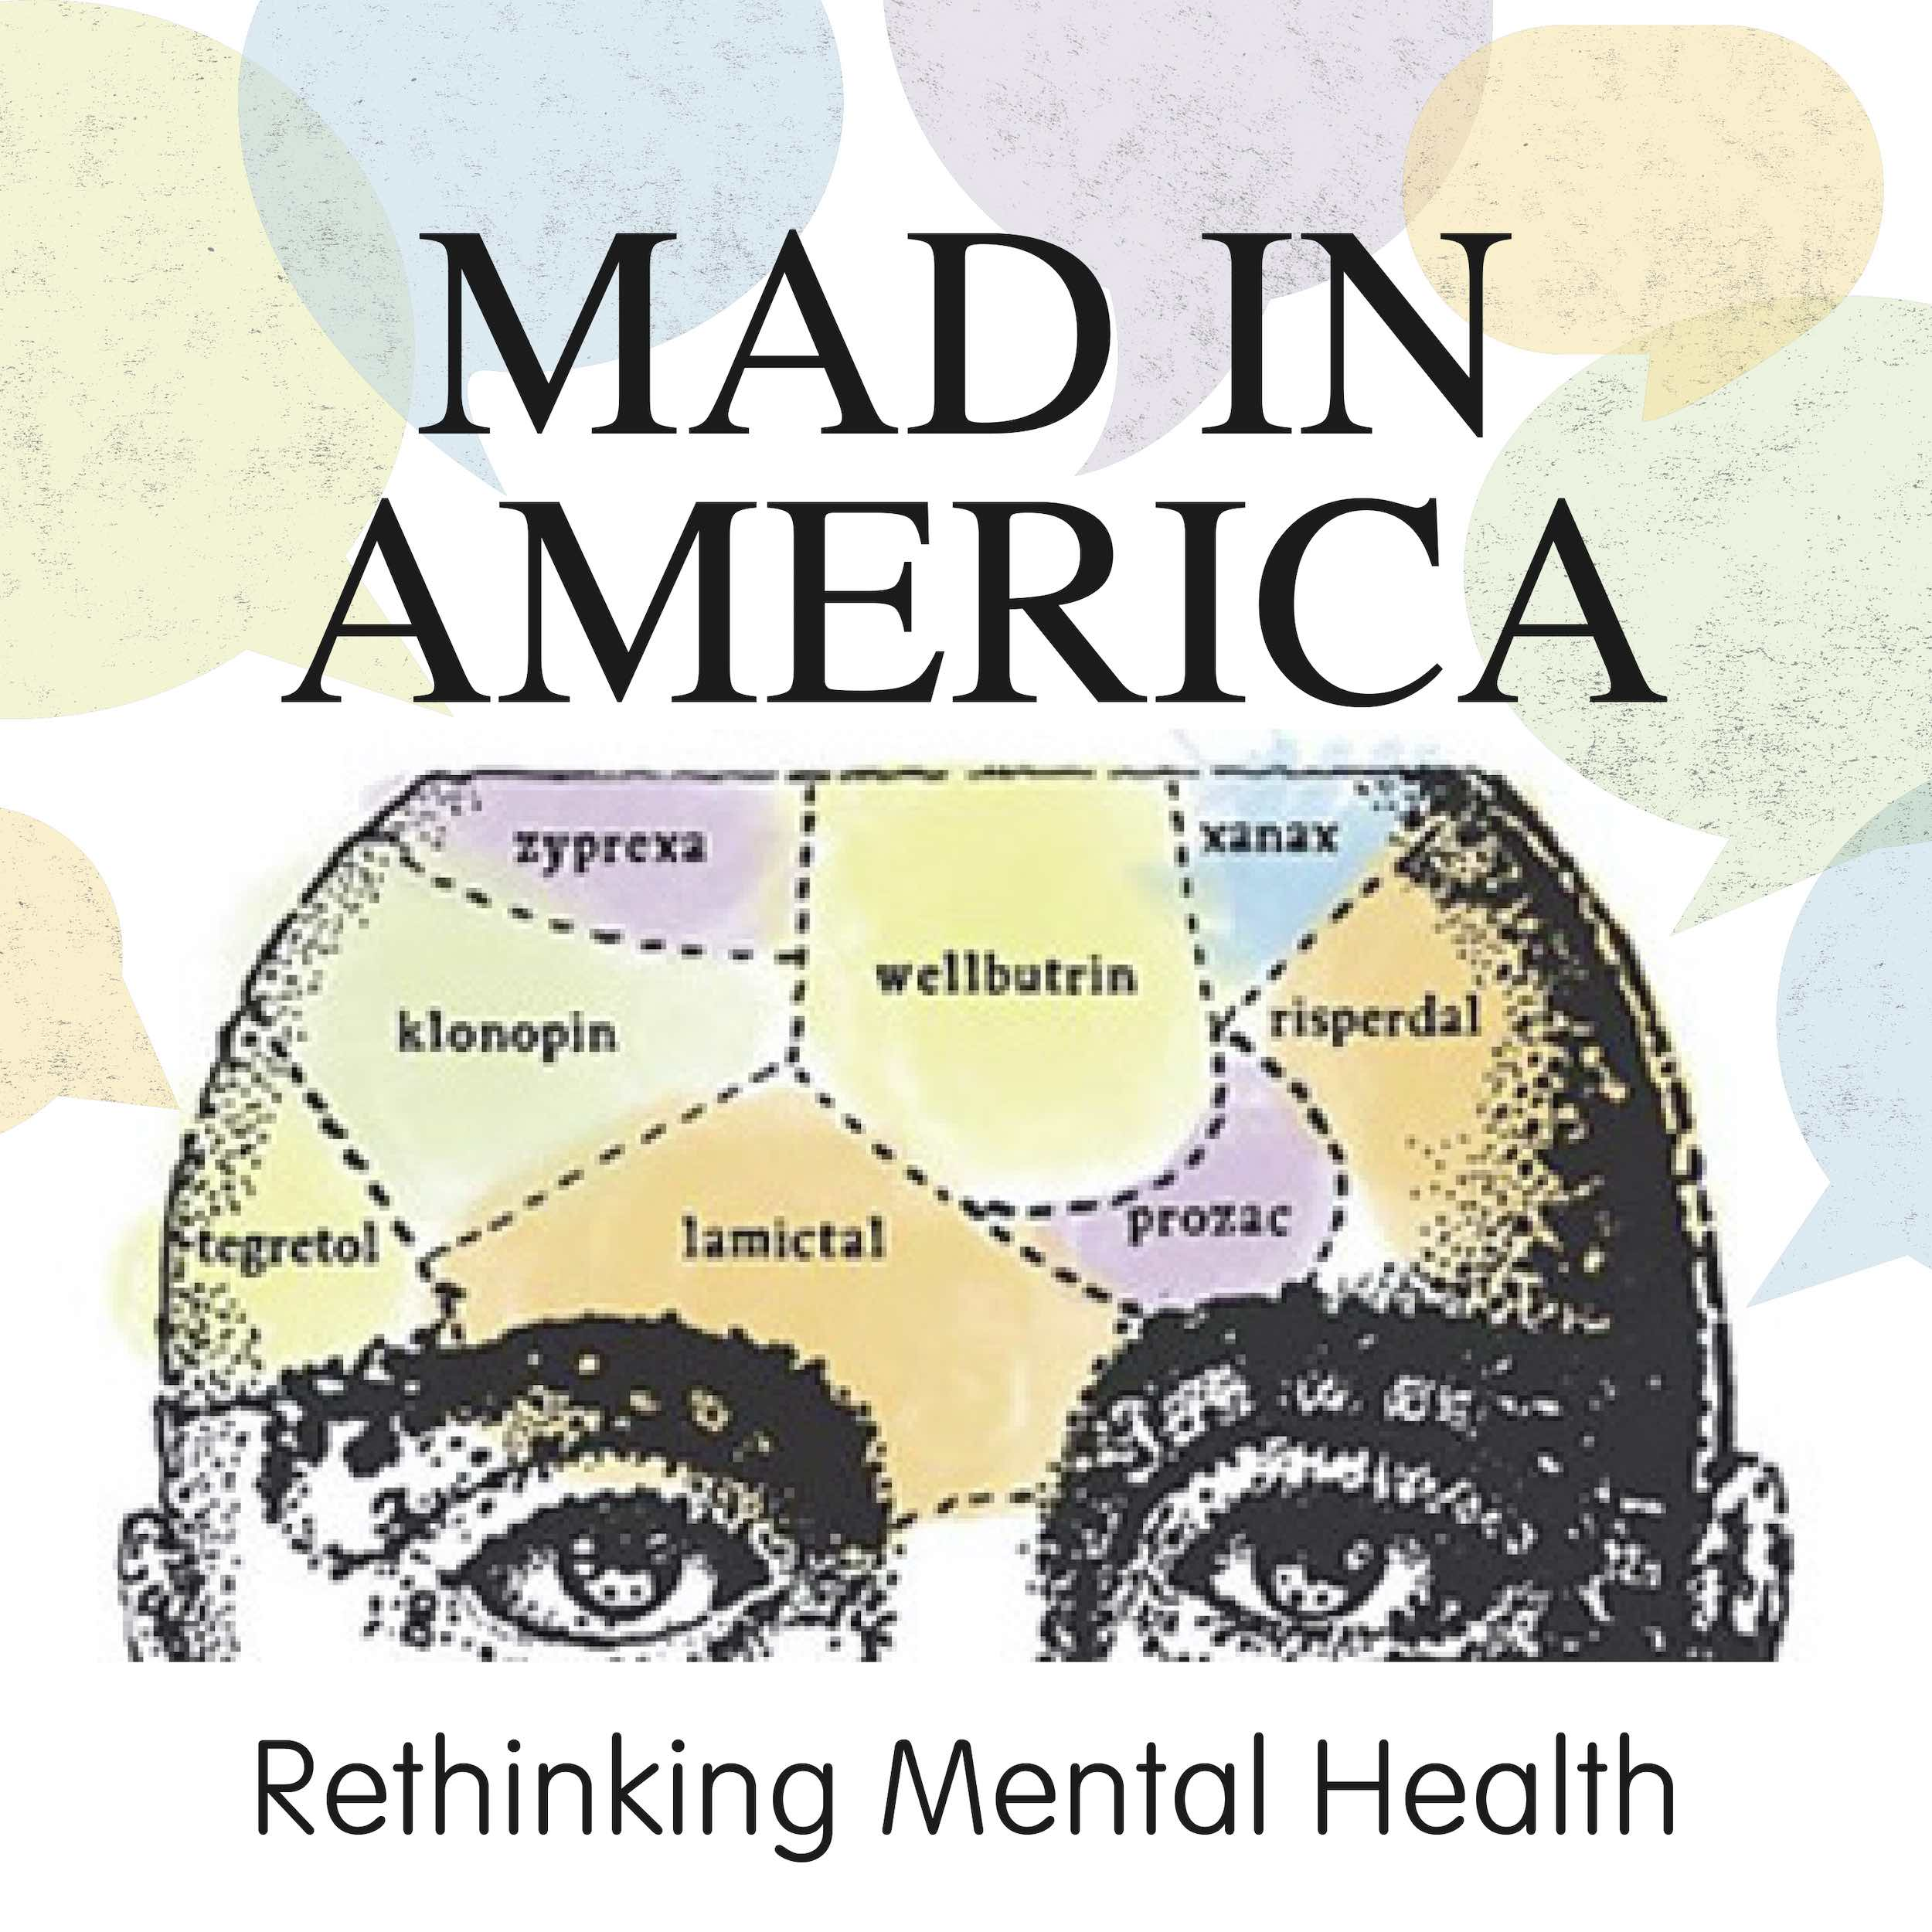 Mad in America: Rethinking Mental Health - Piers Gooding - Psychosocial Disability Rights and Digital Mental Health